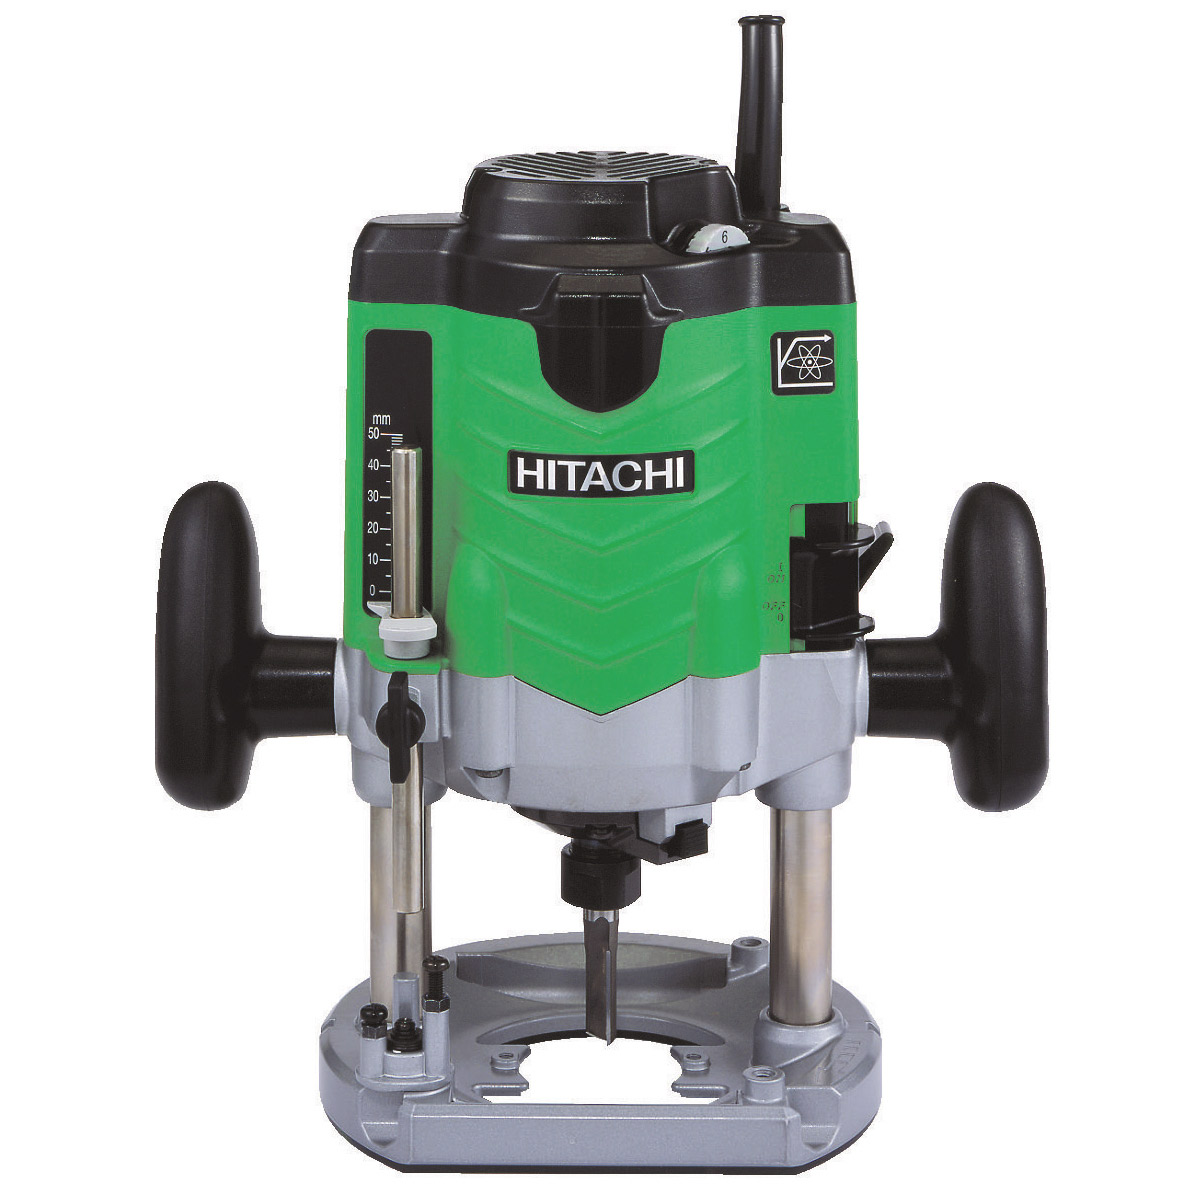 HITACHI M12VE 1/2IN VARIABLE SPEED ROUTER 240V